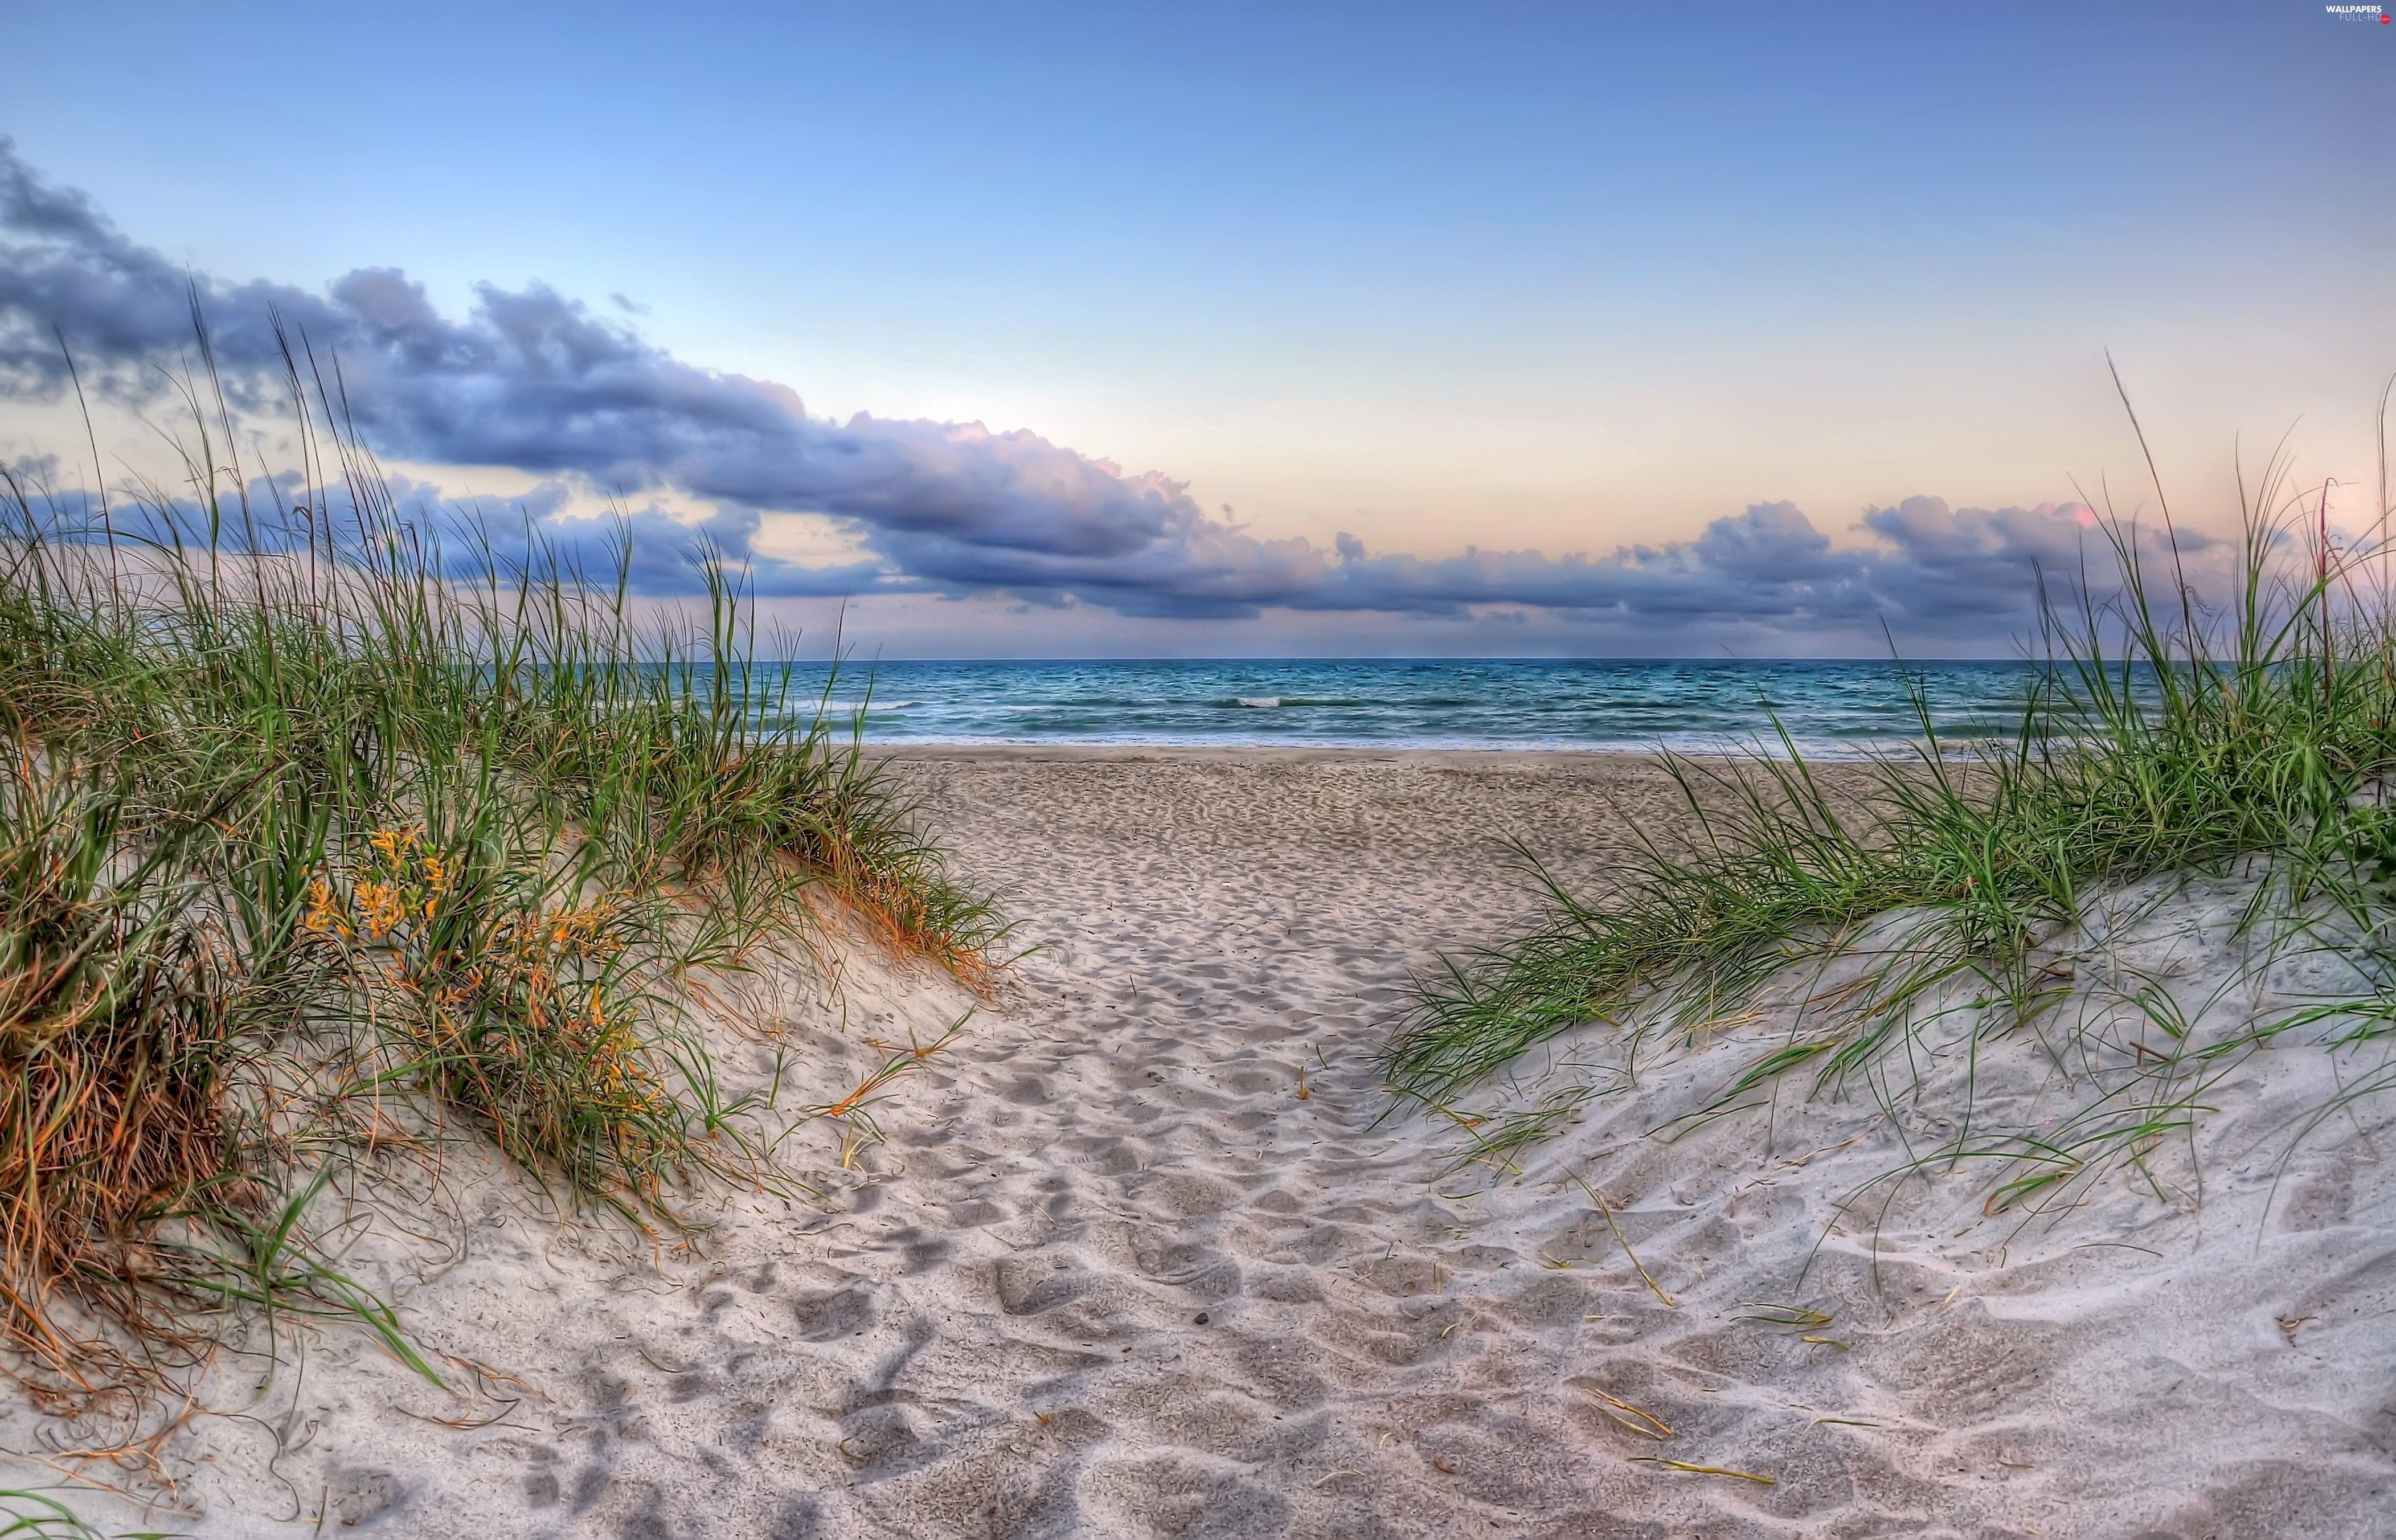 grass, Beaches, clouds, sea